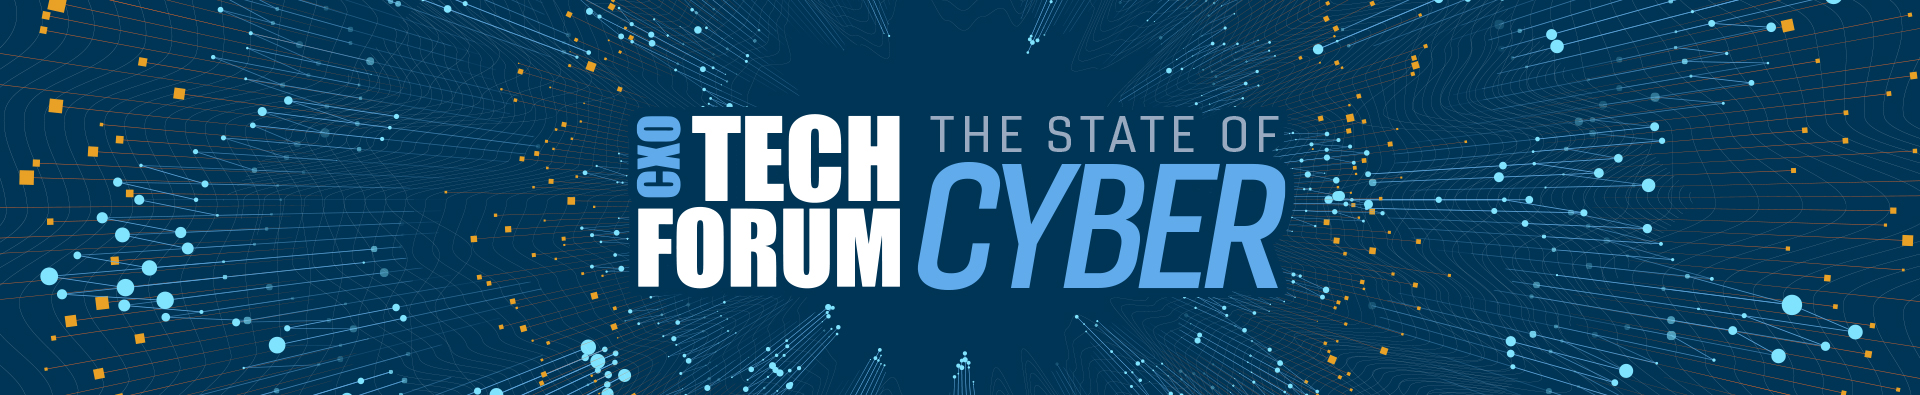 State of Cyber title with digital etchings in the background